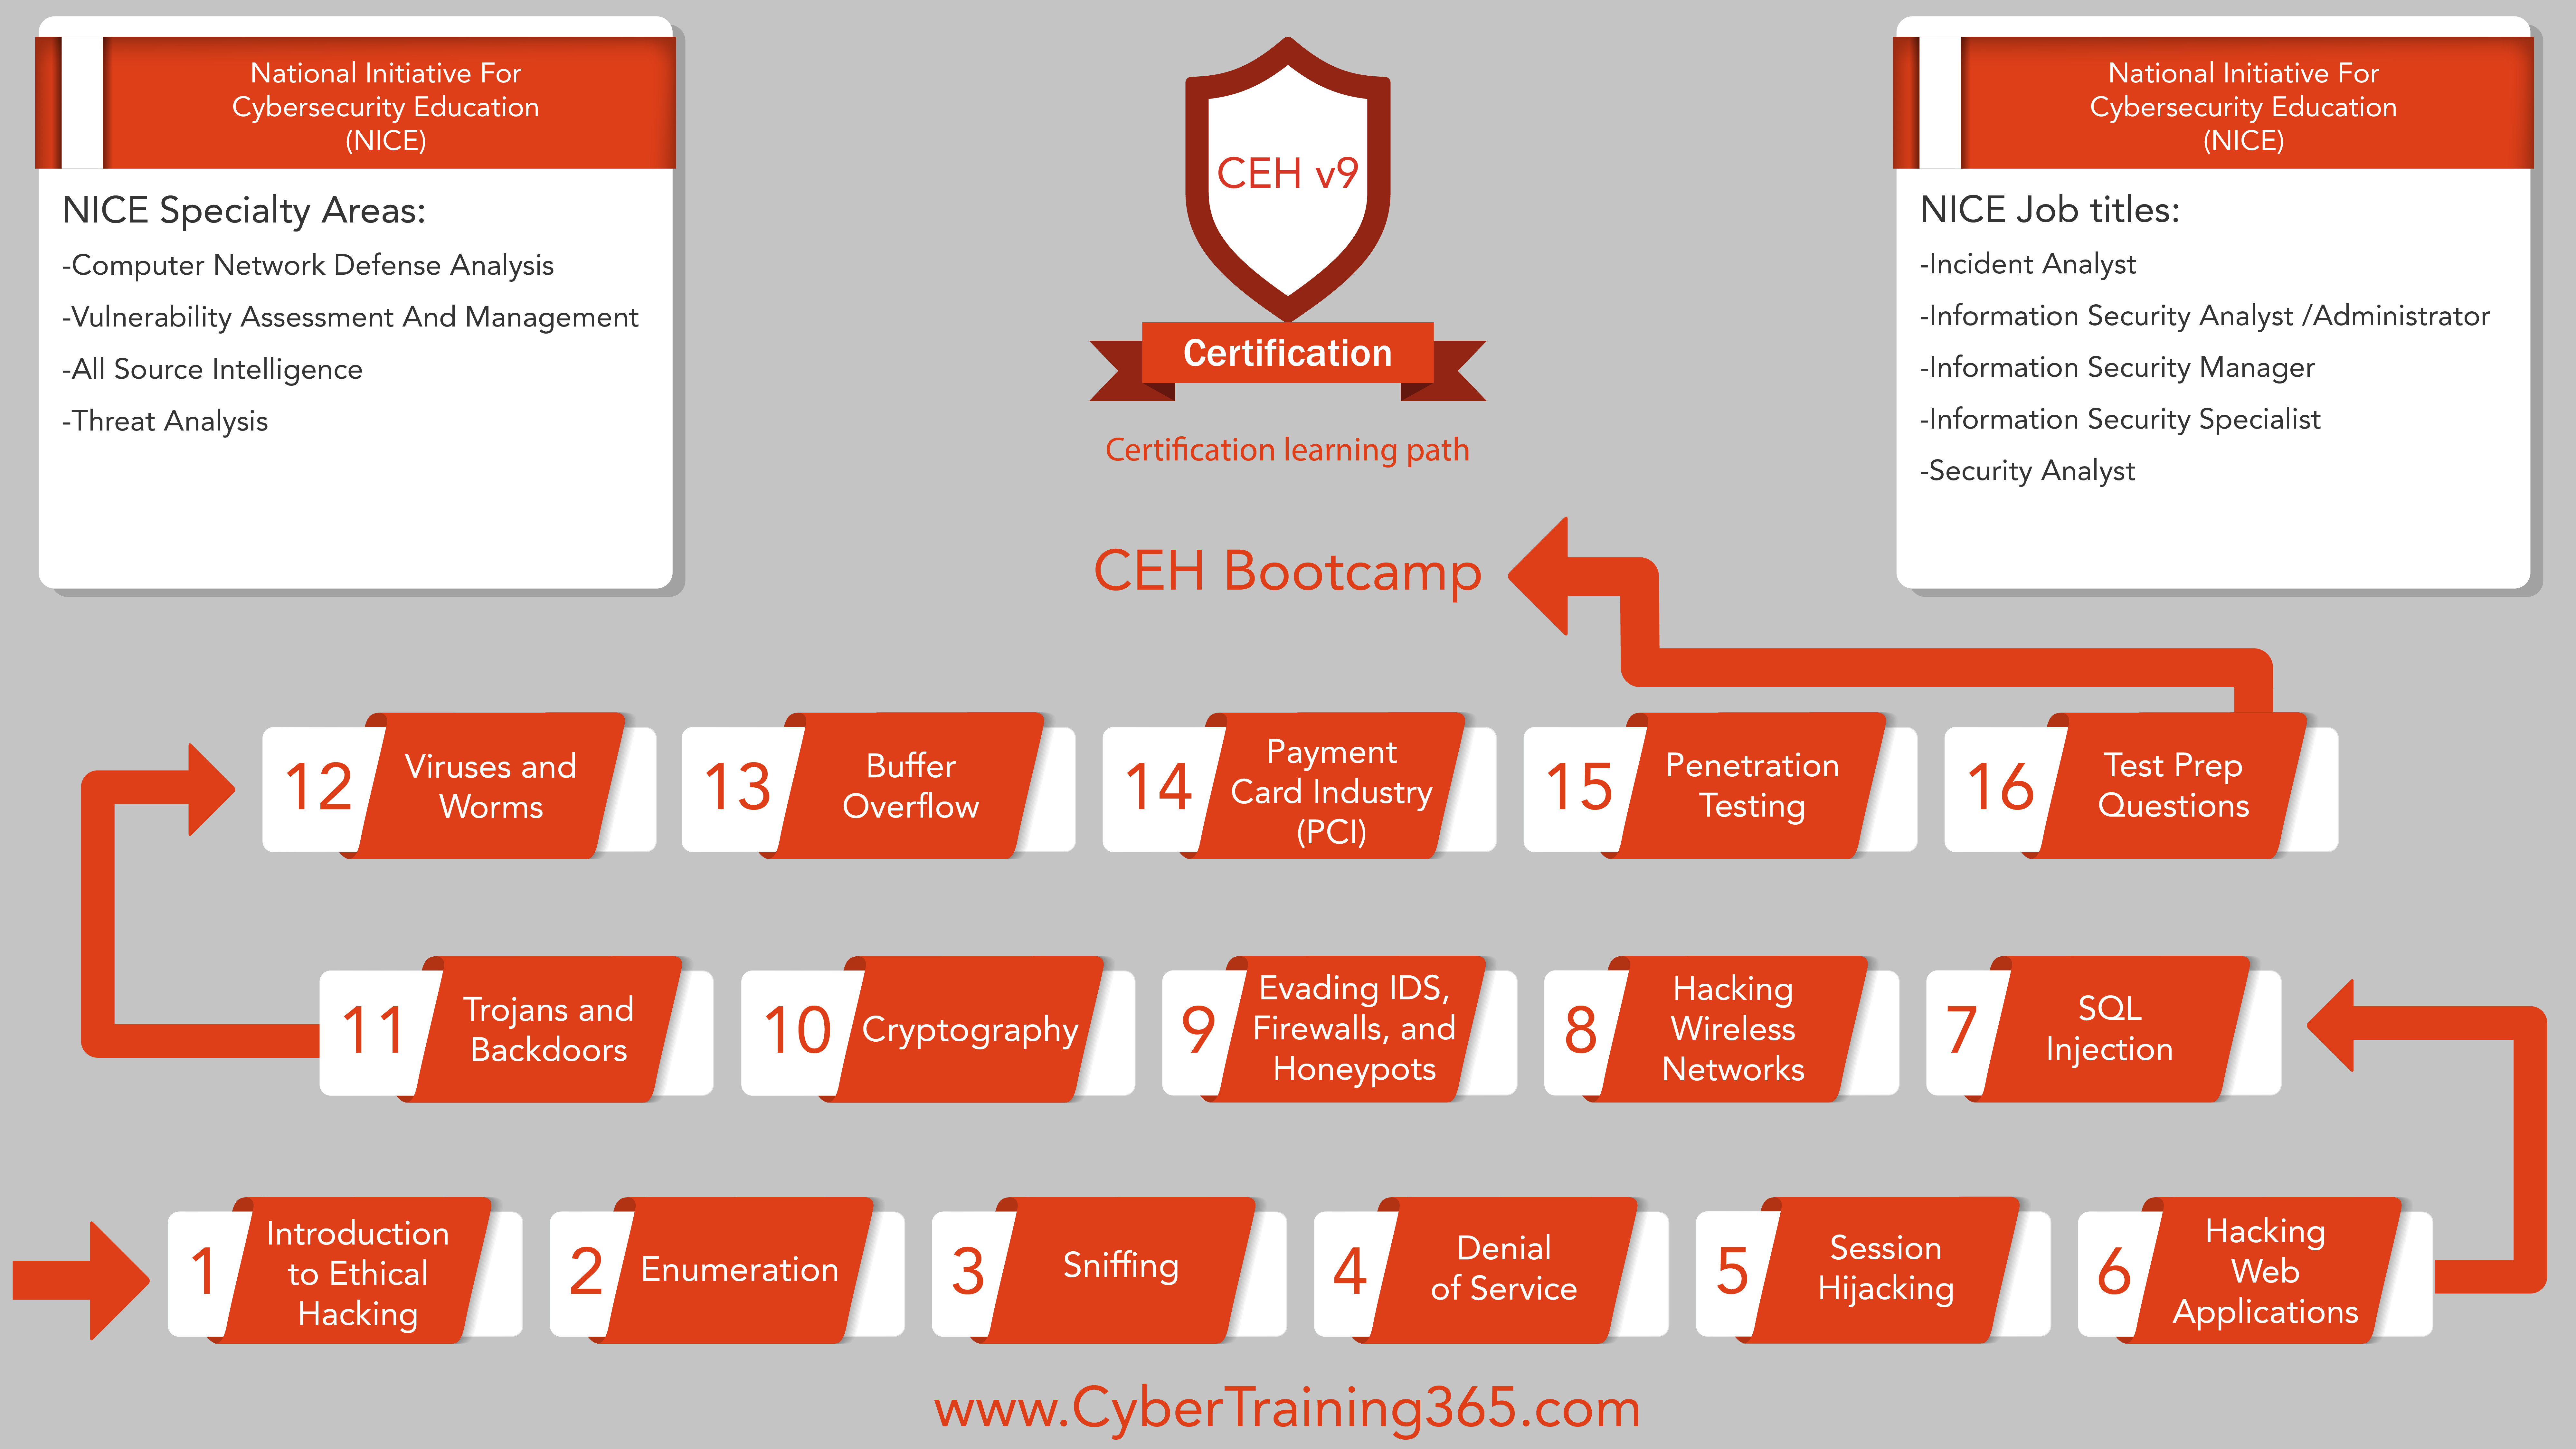 Become An Ethical Hacker With Ceh V9 Bootcamp Cybertraining 365 Blog